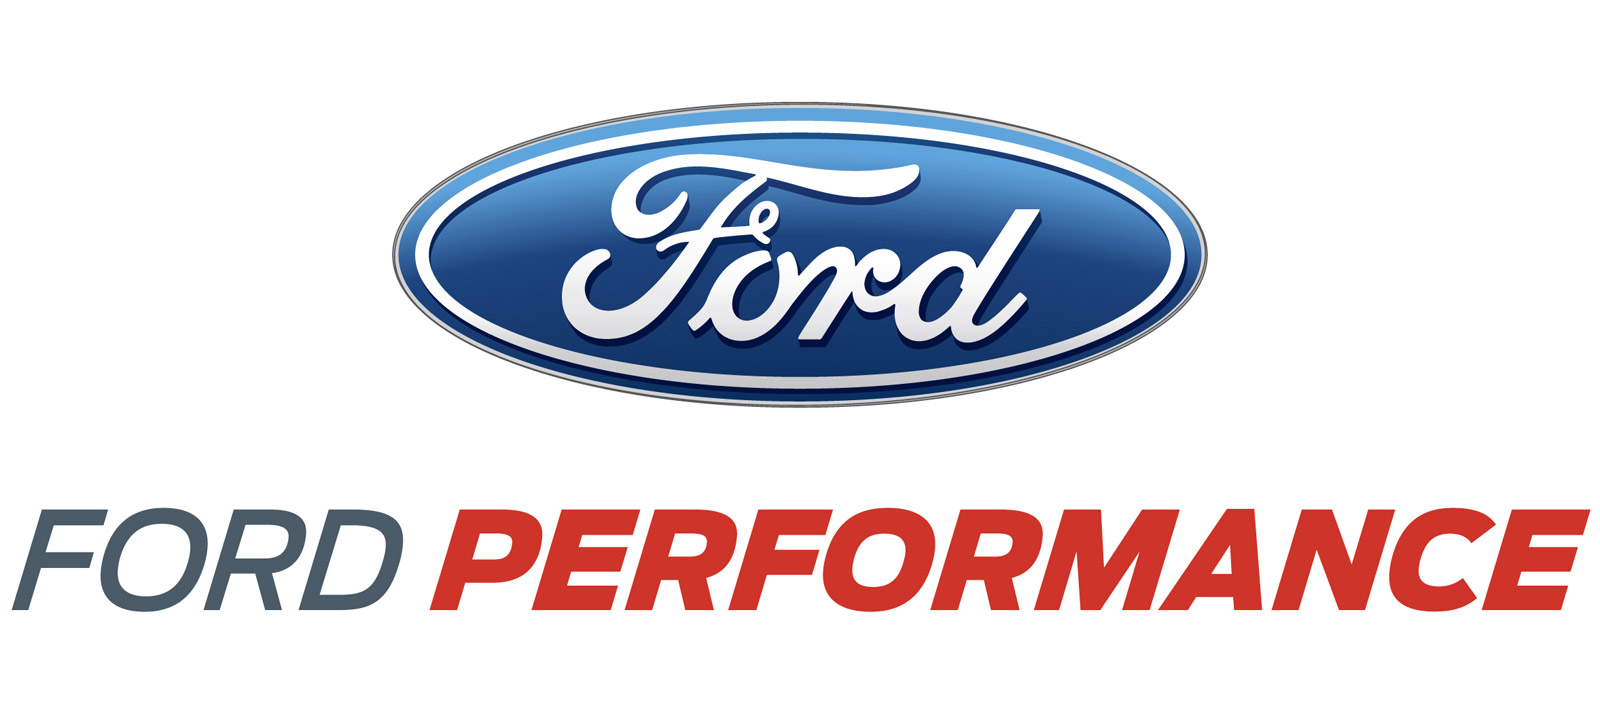 Ford Performance Brand Promises 12 New Special Vehicles, Including Focus RS